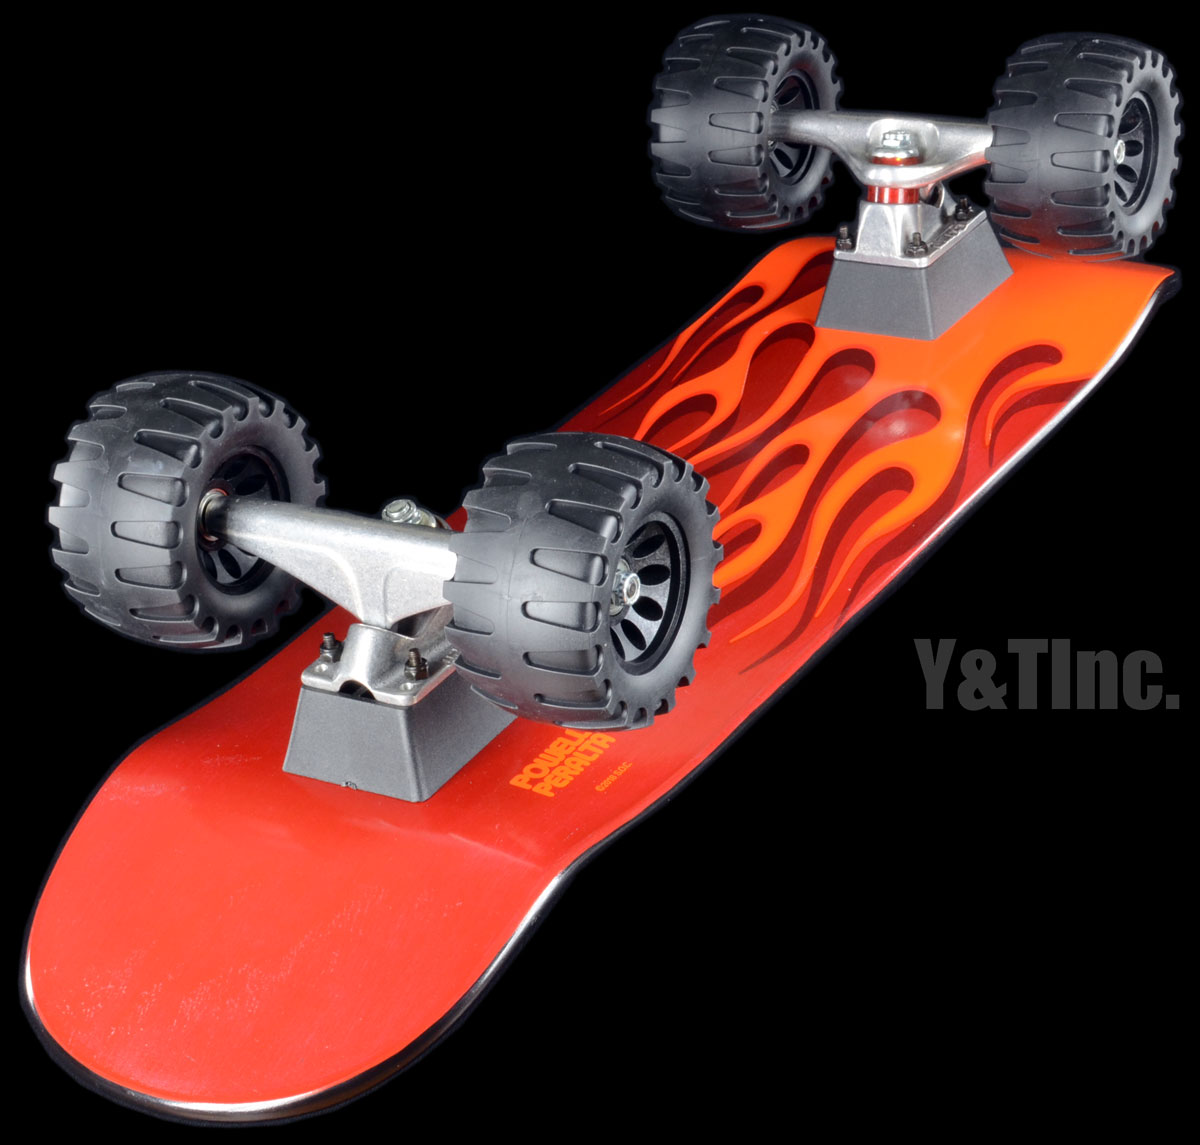 POWELL HOT ROD FLAMES ORANGE RED Tracker161 OffRoad110mm 1